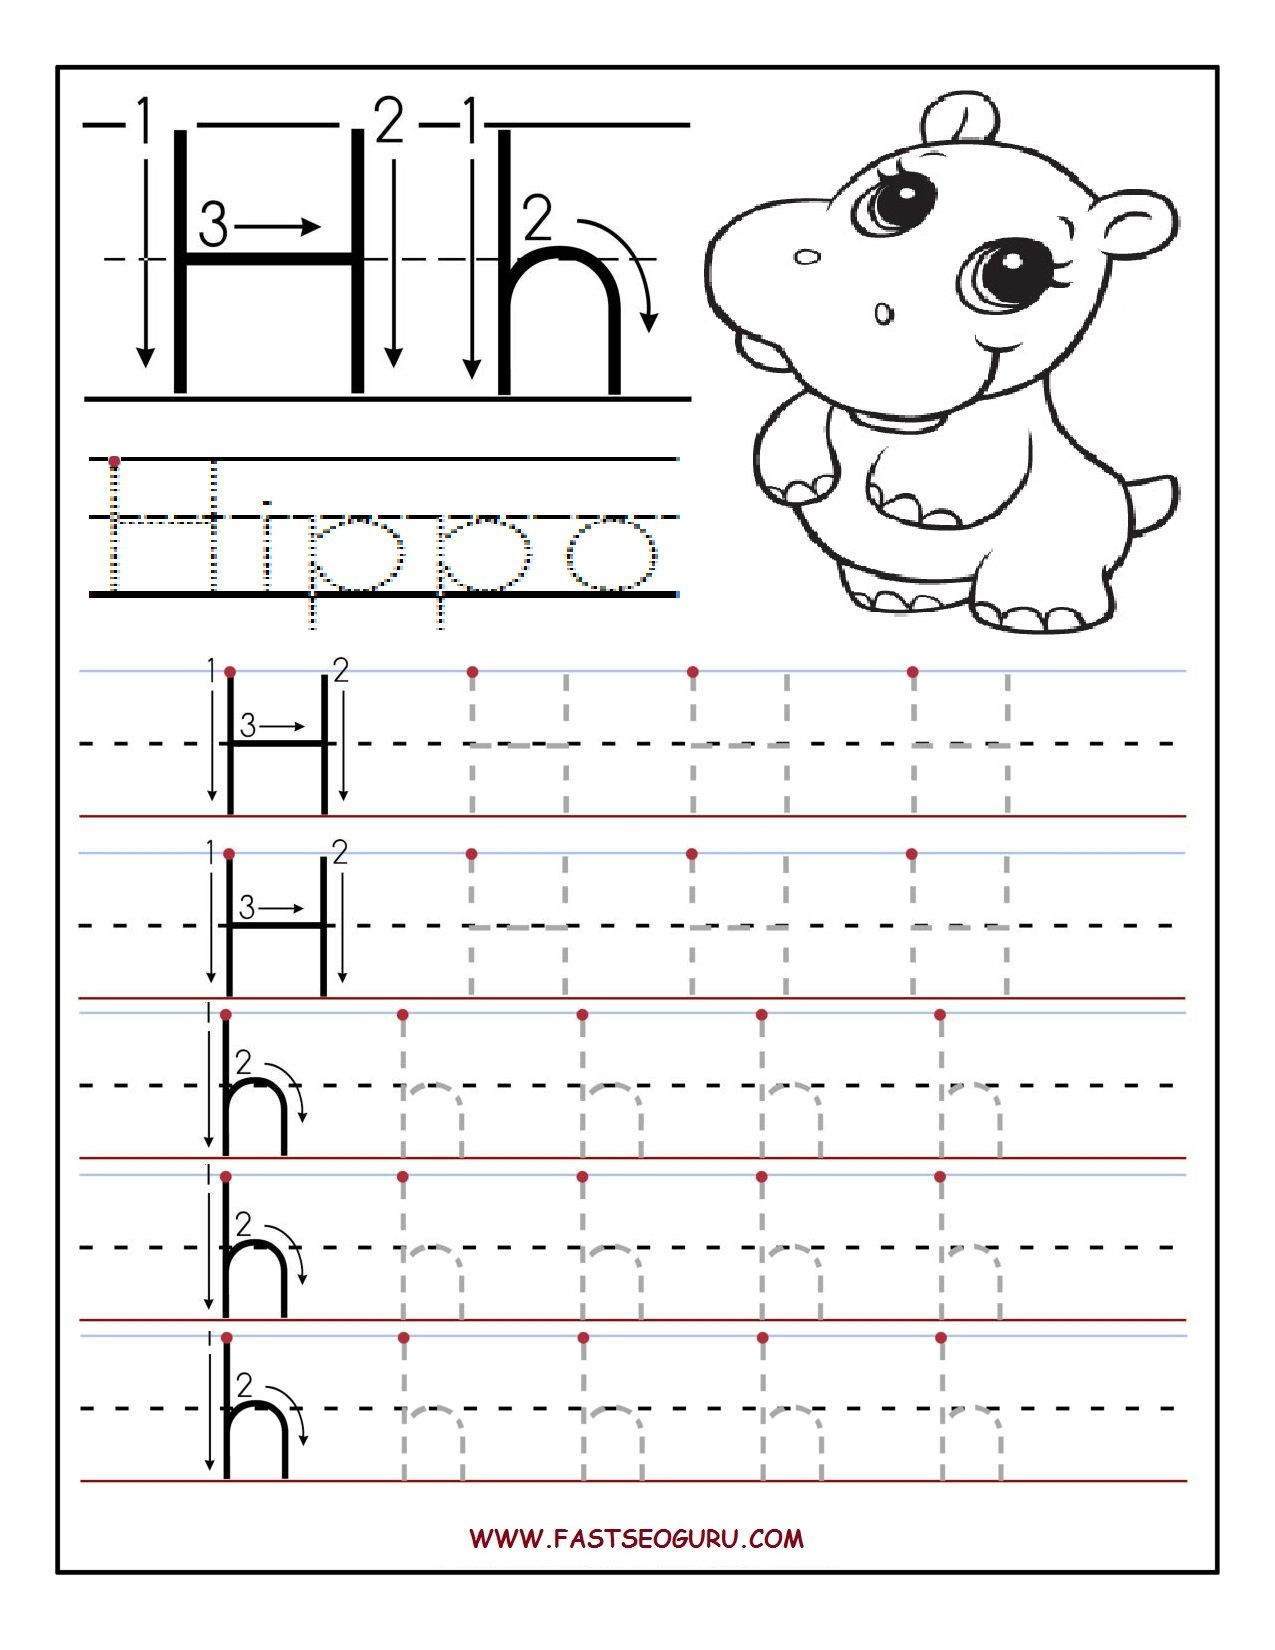 Printable Letter H Tracing Worksheets For Preschool inside Letter H Worksheets For First Grade